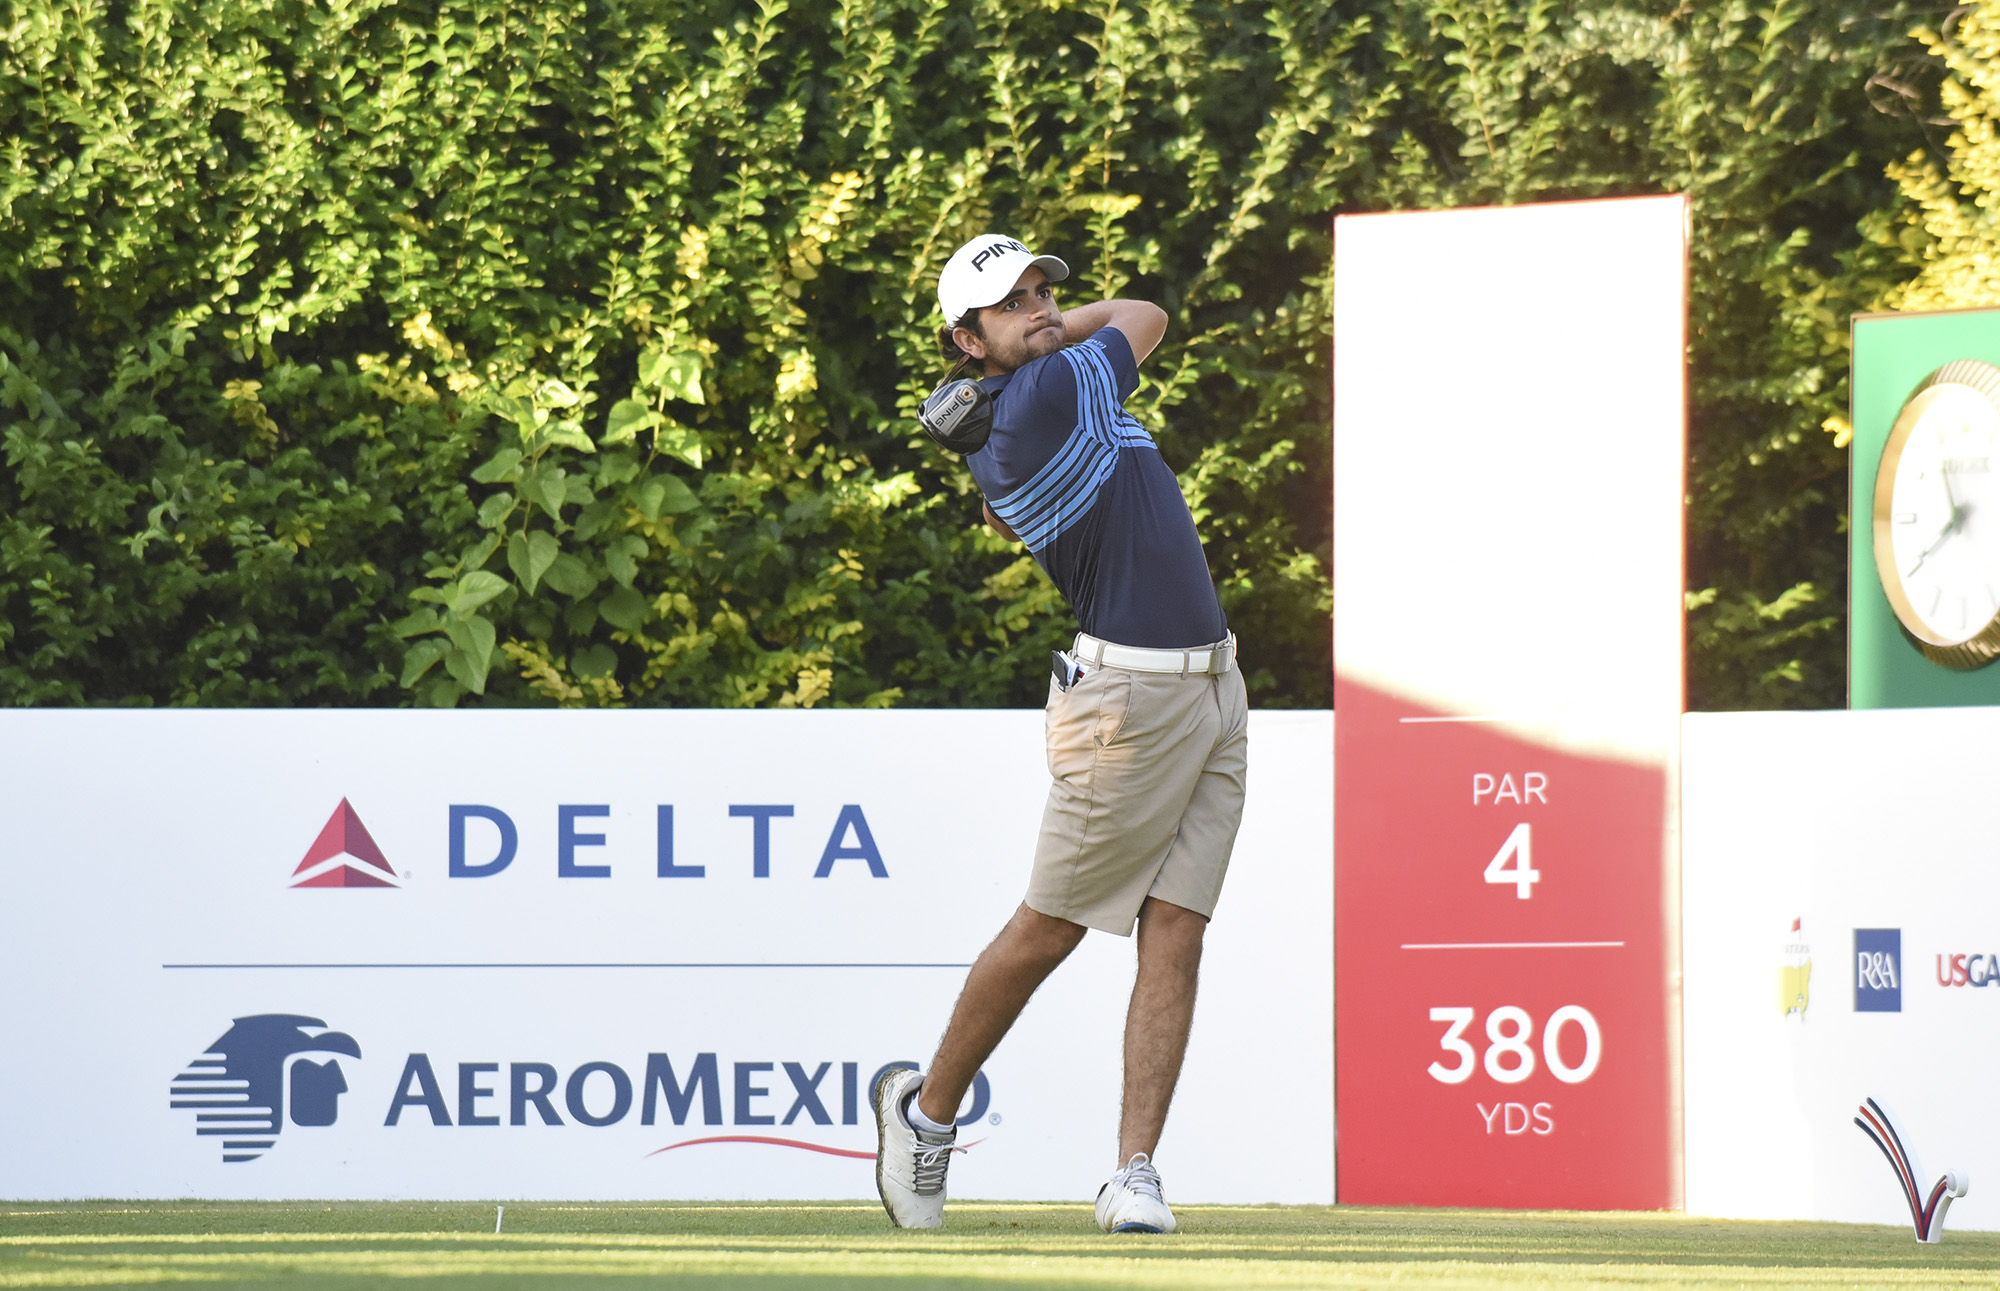 Defending Champion Toto Gana Tied for Lead After Day One of Latin ...